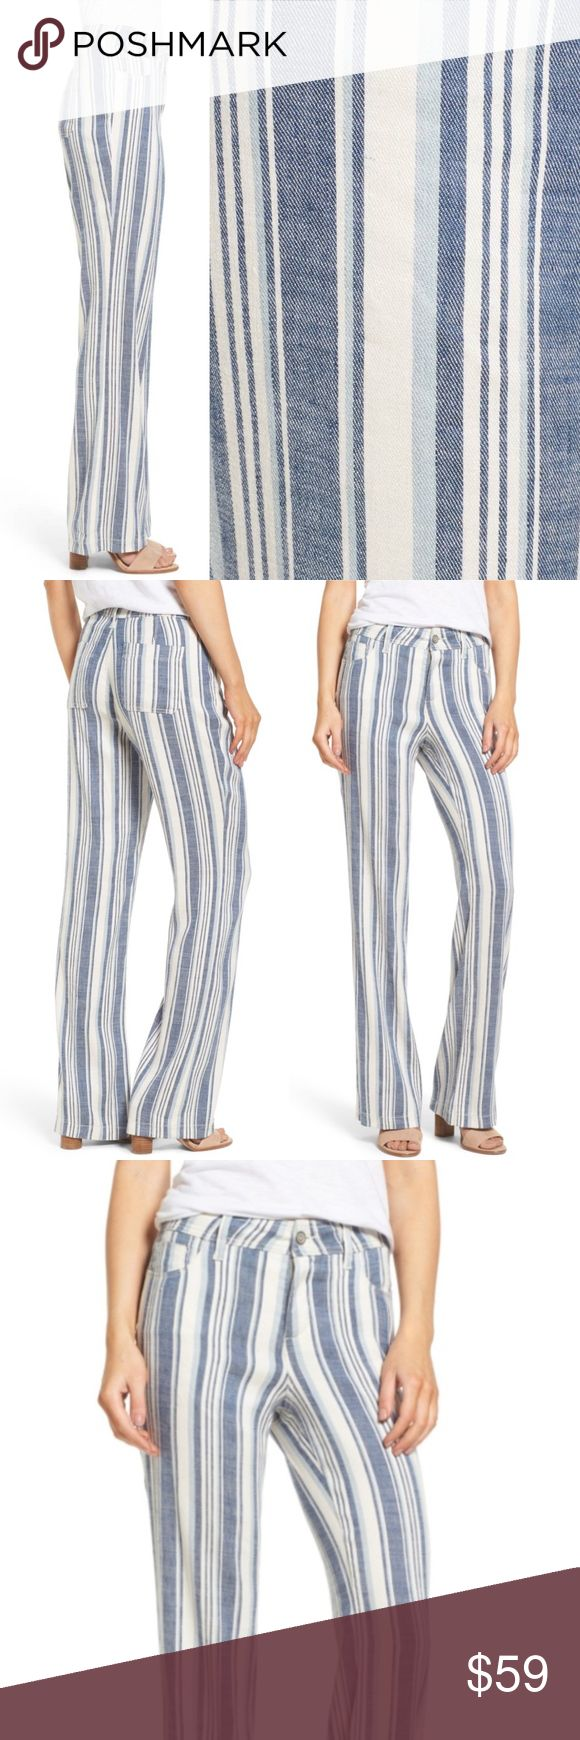 NYDJ Wylie Stripe Linen Blend Trousers Nautical 12 MSRP $114 Sold out  Size 12 Color Waikiki Stripe (blue/cream)  Wide-cut legs, variegated vertical stripes, figure-elongating style 5-pocket pants fashioned from stretch-woven linen blend. NYDJ exclusive lift-tuck technology helps flatten tummy/lift rear. Zip fly+button closure  NWT; no flaws 56% linen/42% viscose/2% elastane Machine wash  Measures flat approx inches Length 43 Inseam 31 Rise 11 Waist 18 Hip 21.5  Offers warmly accepted - If…